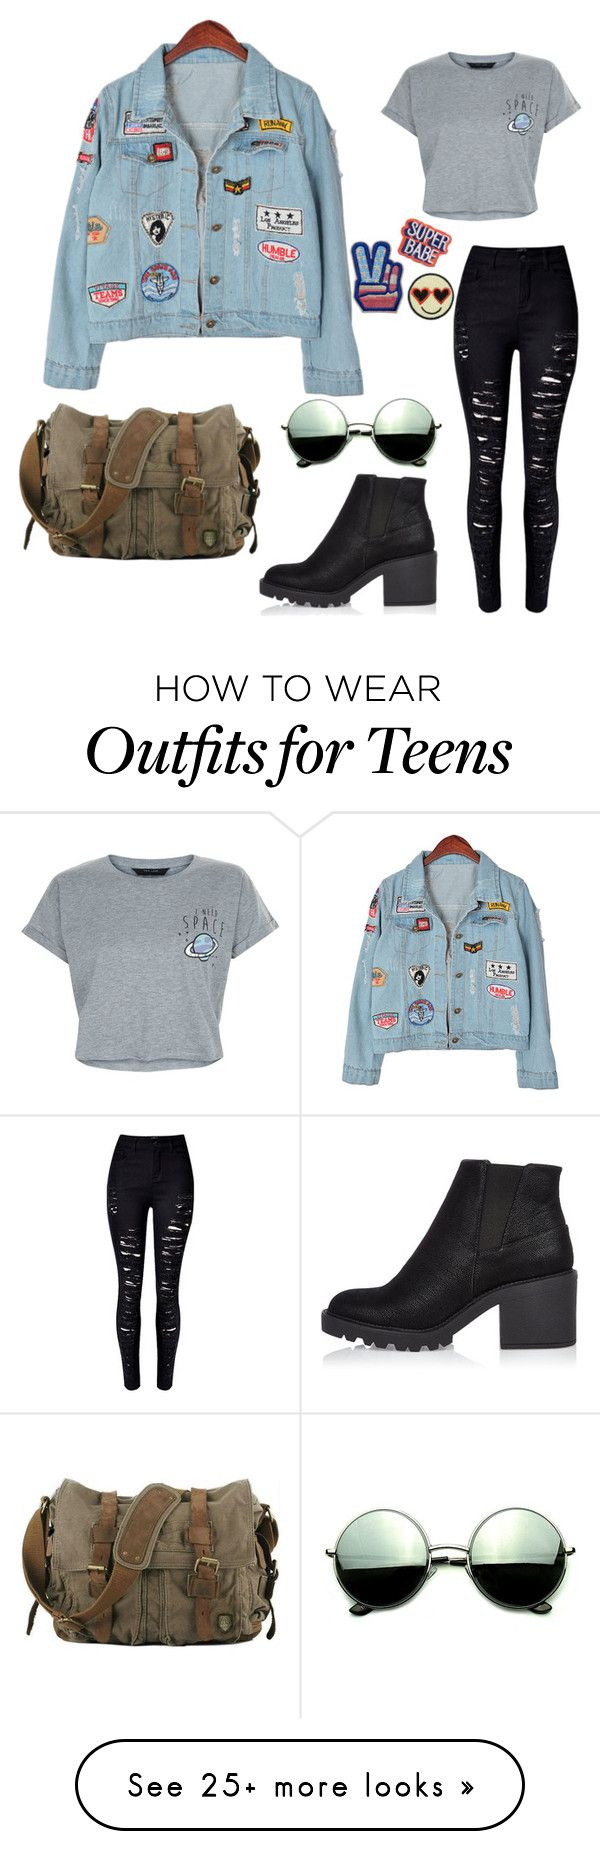 """Grunge Denim Jacket"" by tragicmistakes on Polyvore featuring WithChic, New Look, Chicnova Fashion, River Island, Revo, grunge, denimjackets and WardrobeStaples"